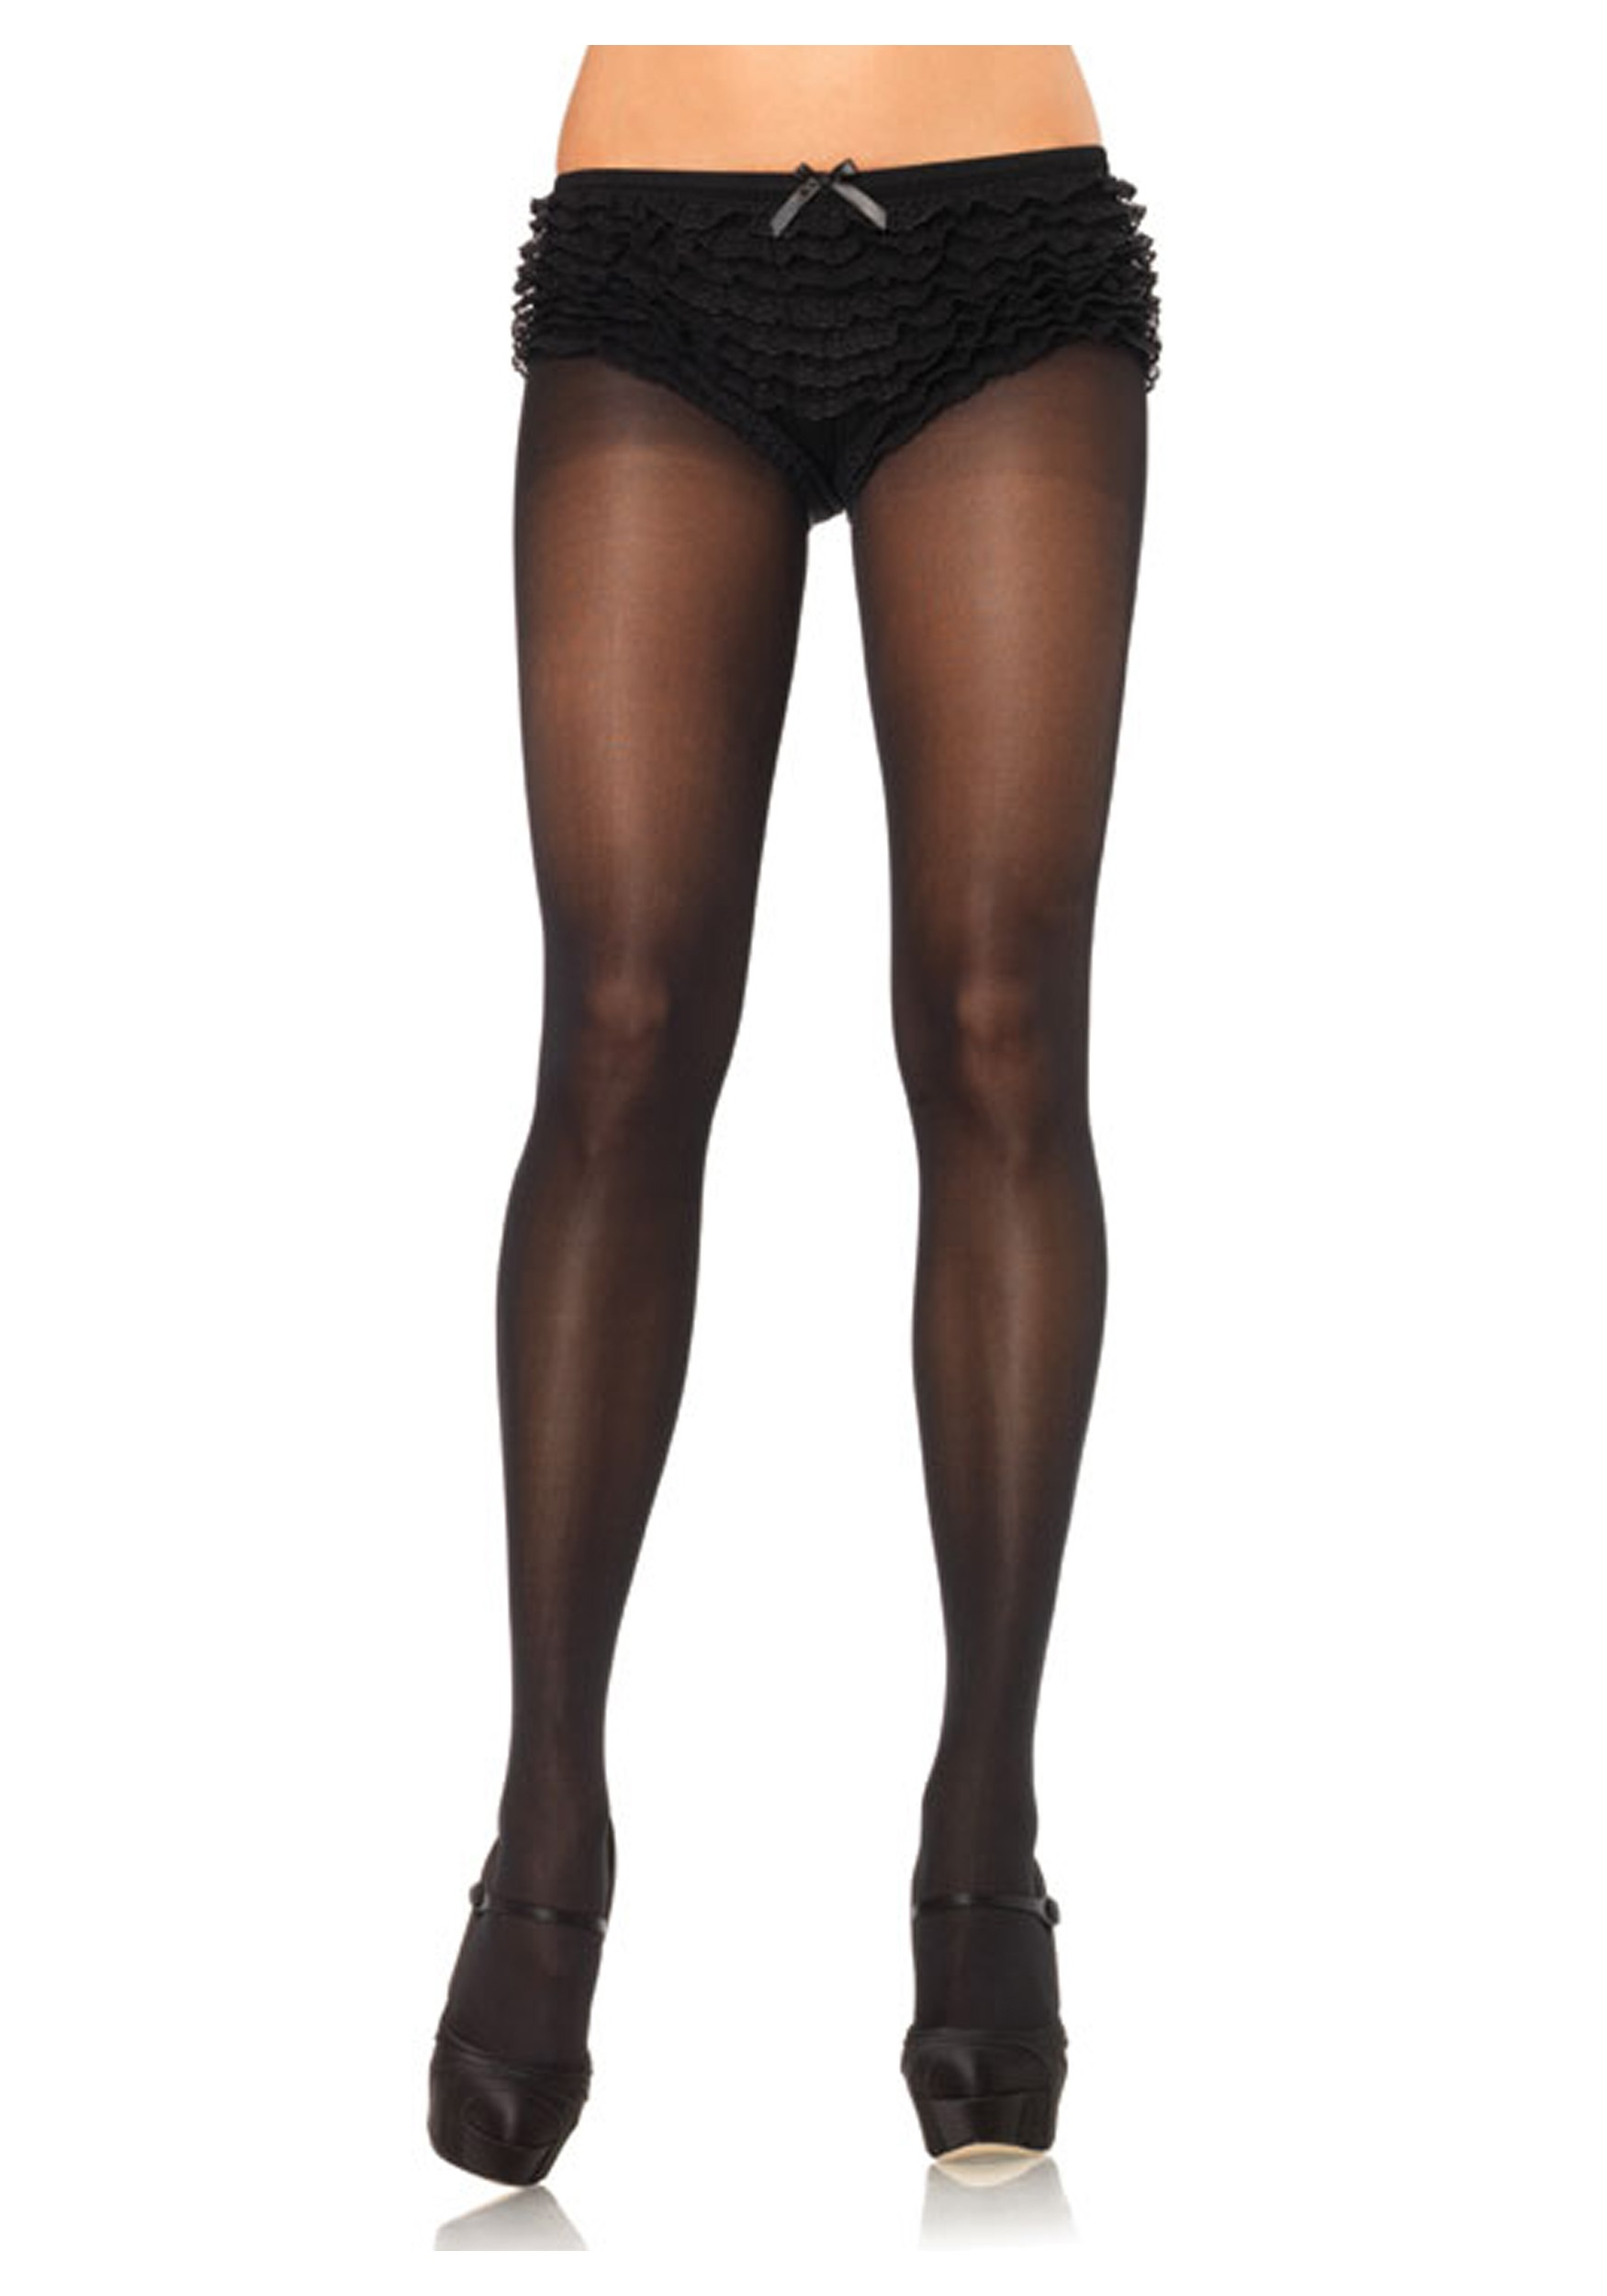 Black pantyhose pictures